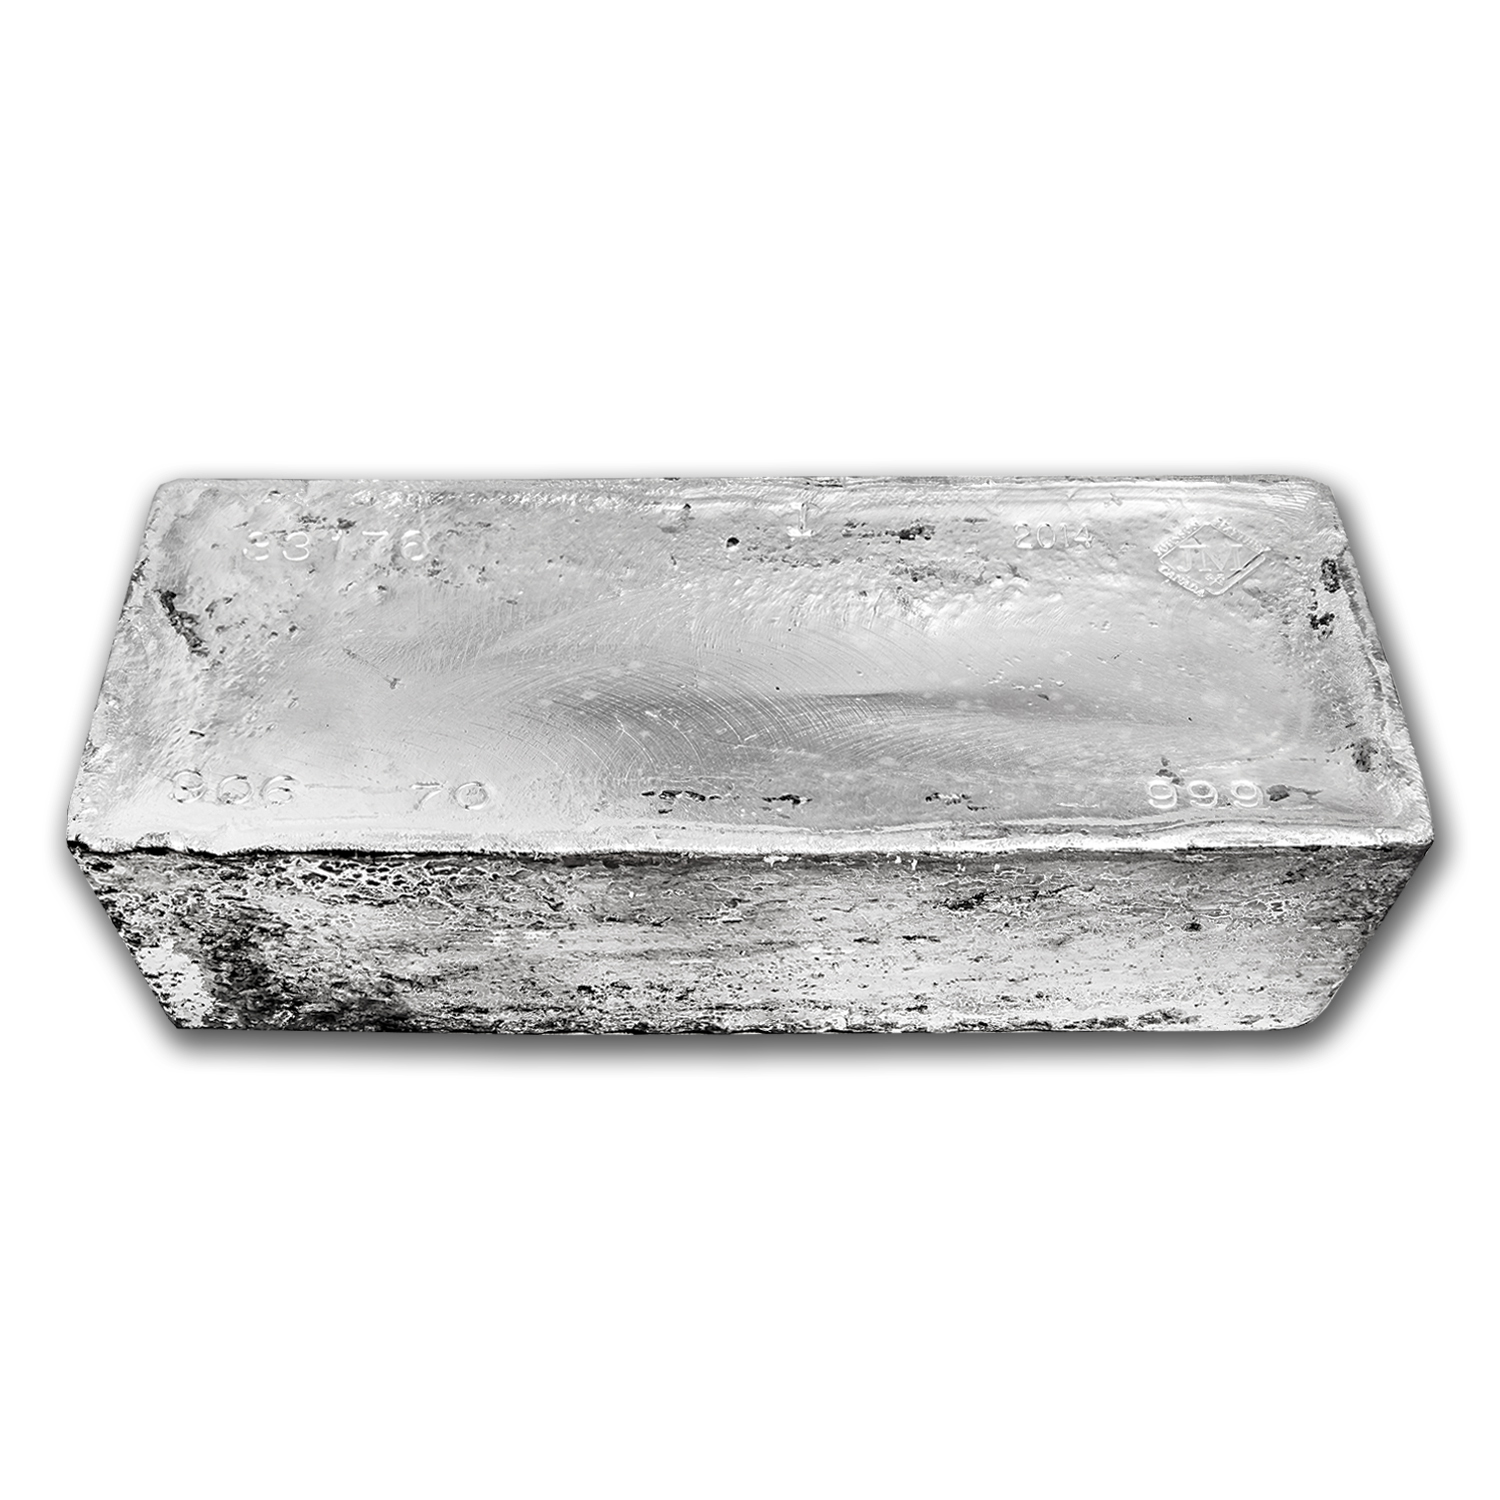 946.40 oz Silver Bars - Johnson Matthey